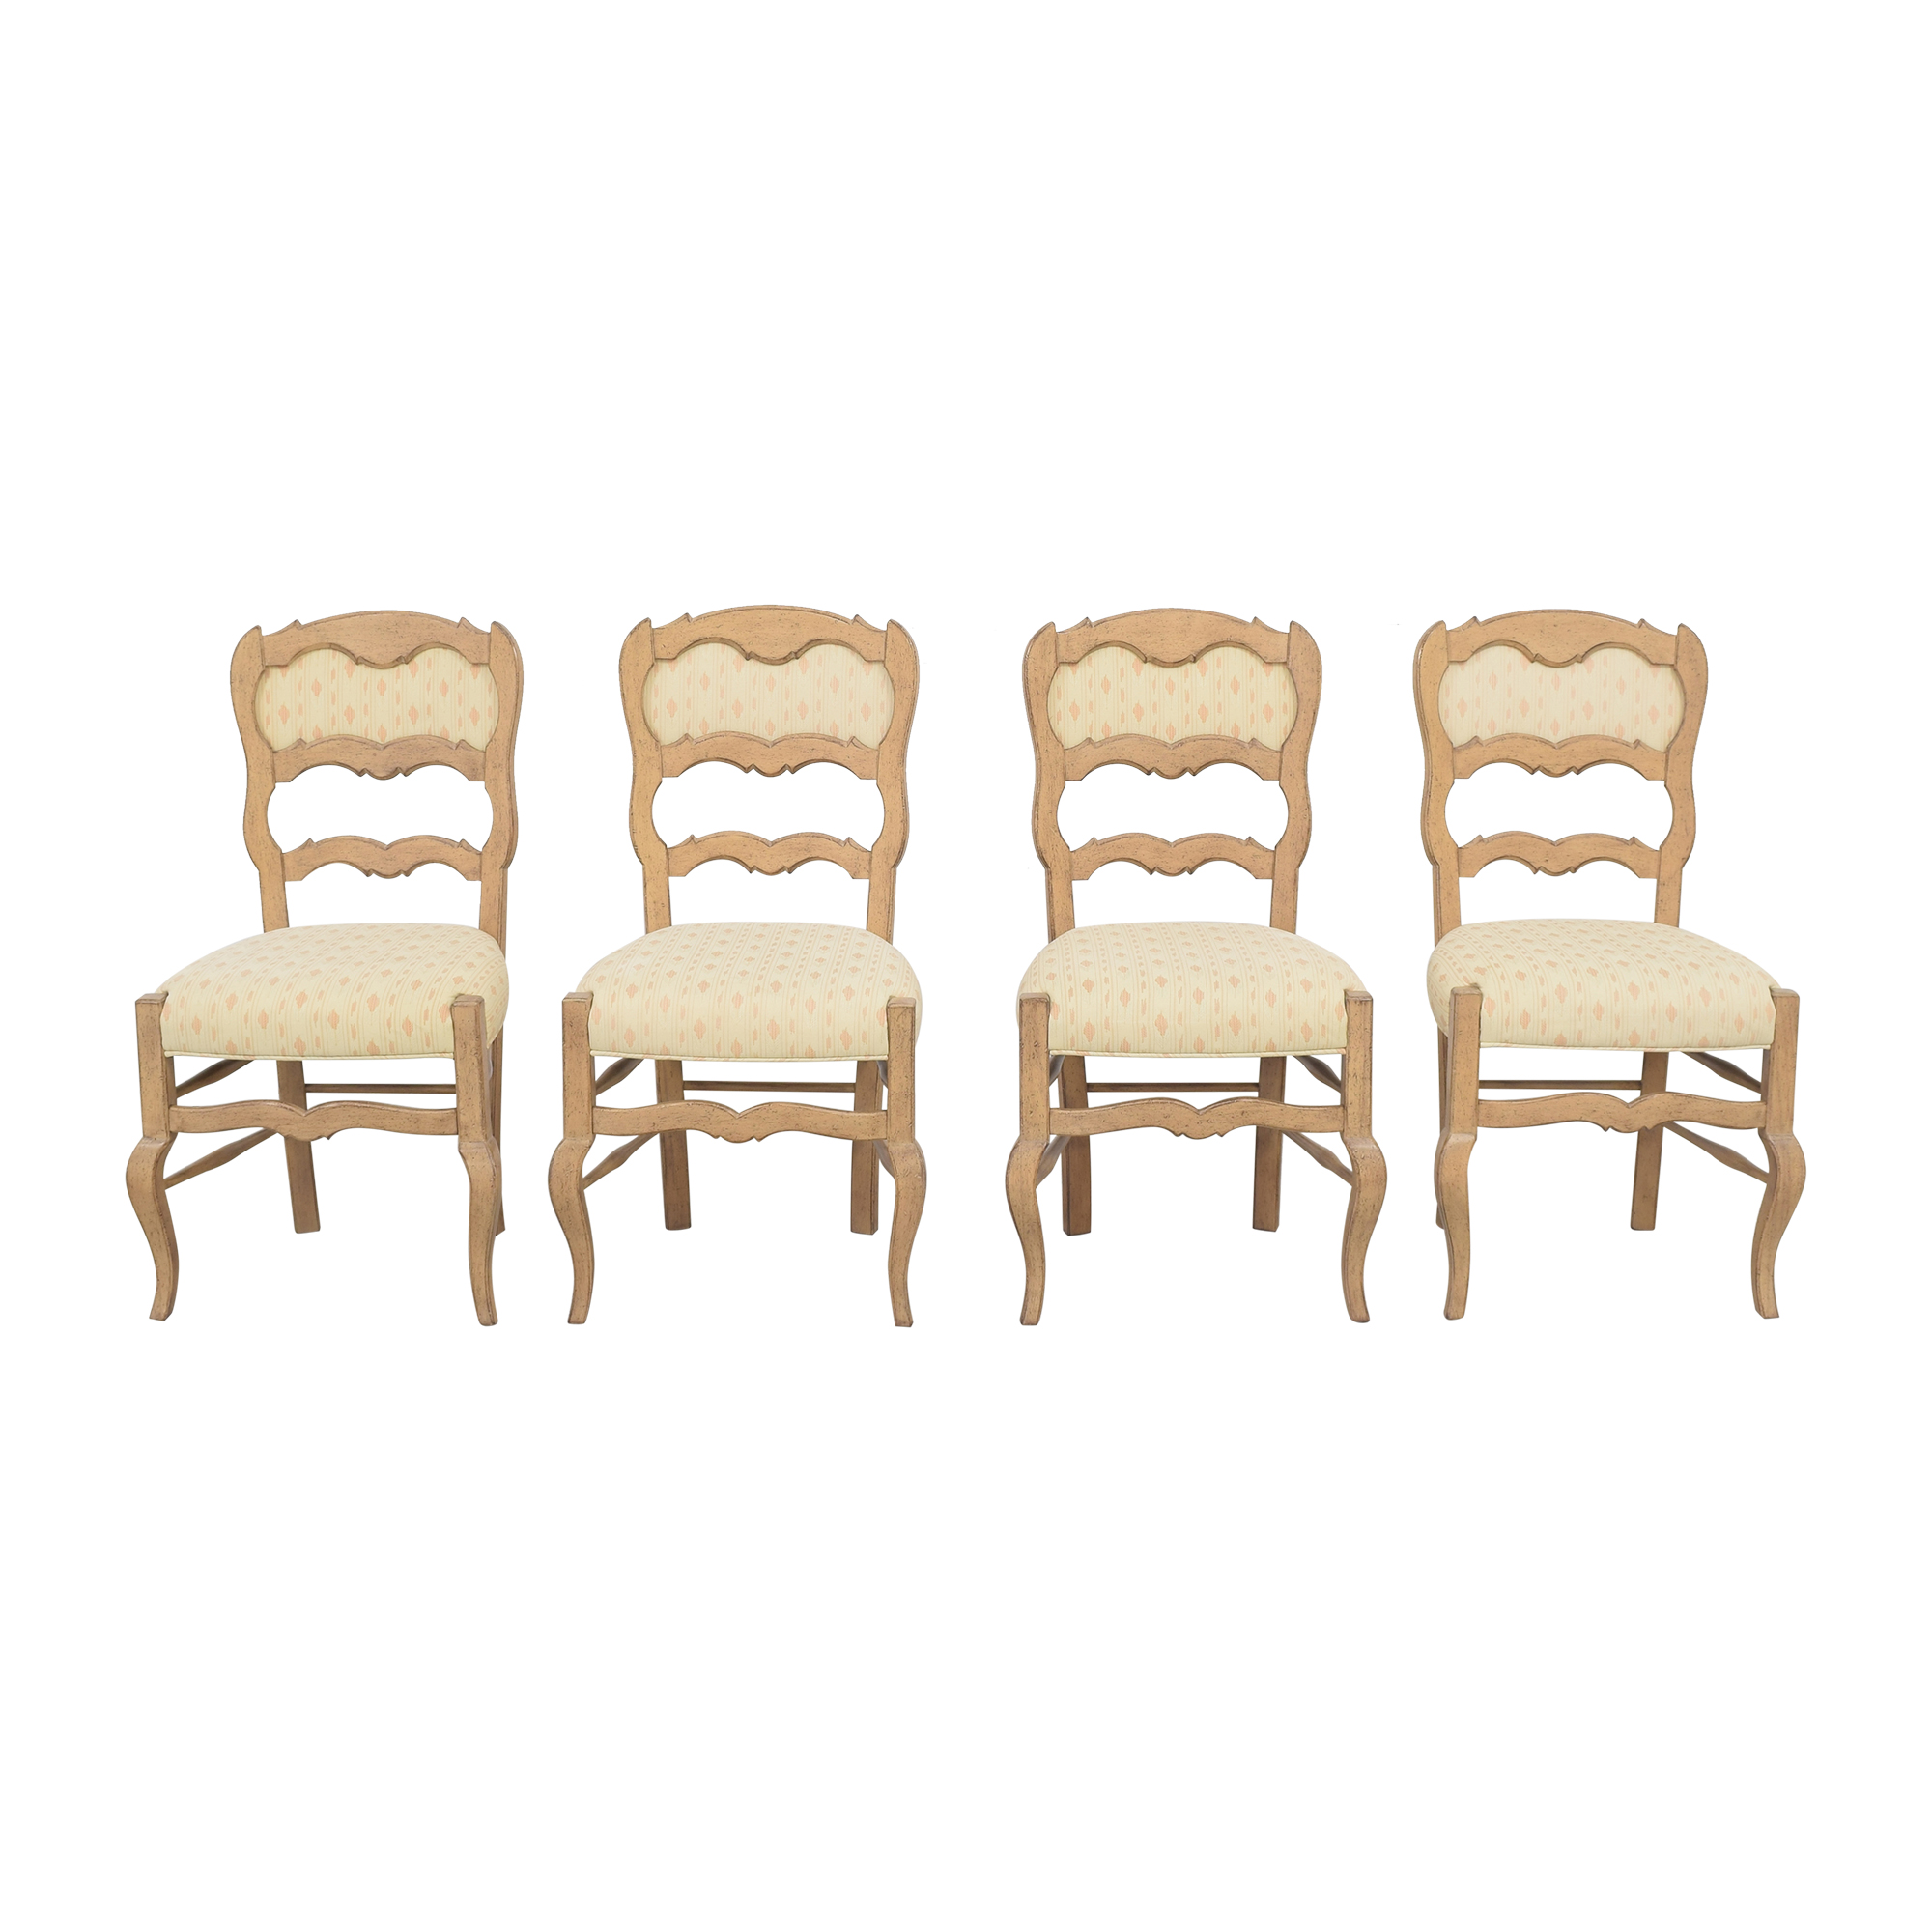 Cassard Chateau Upholstered Dining Chairs multi